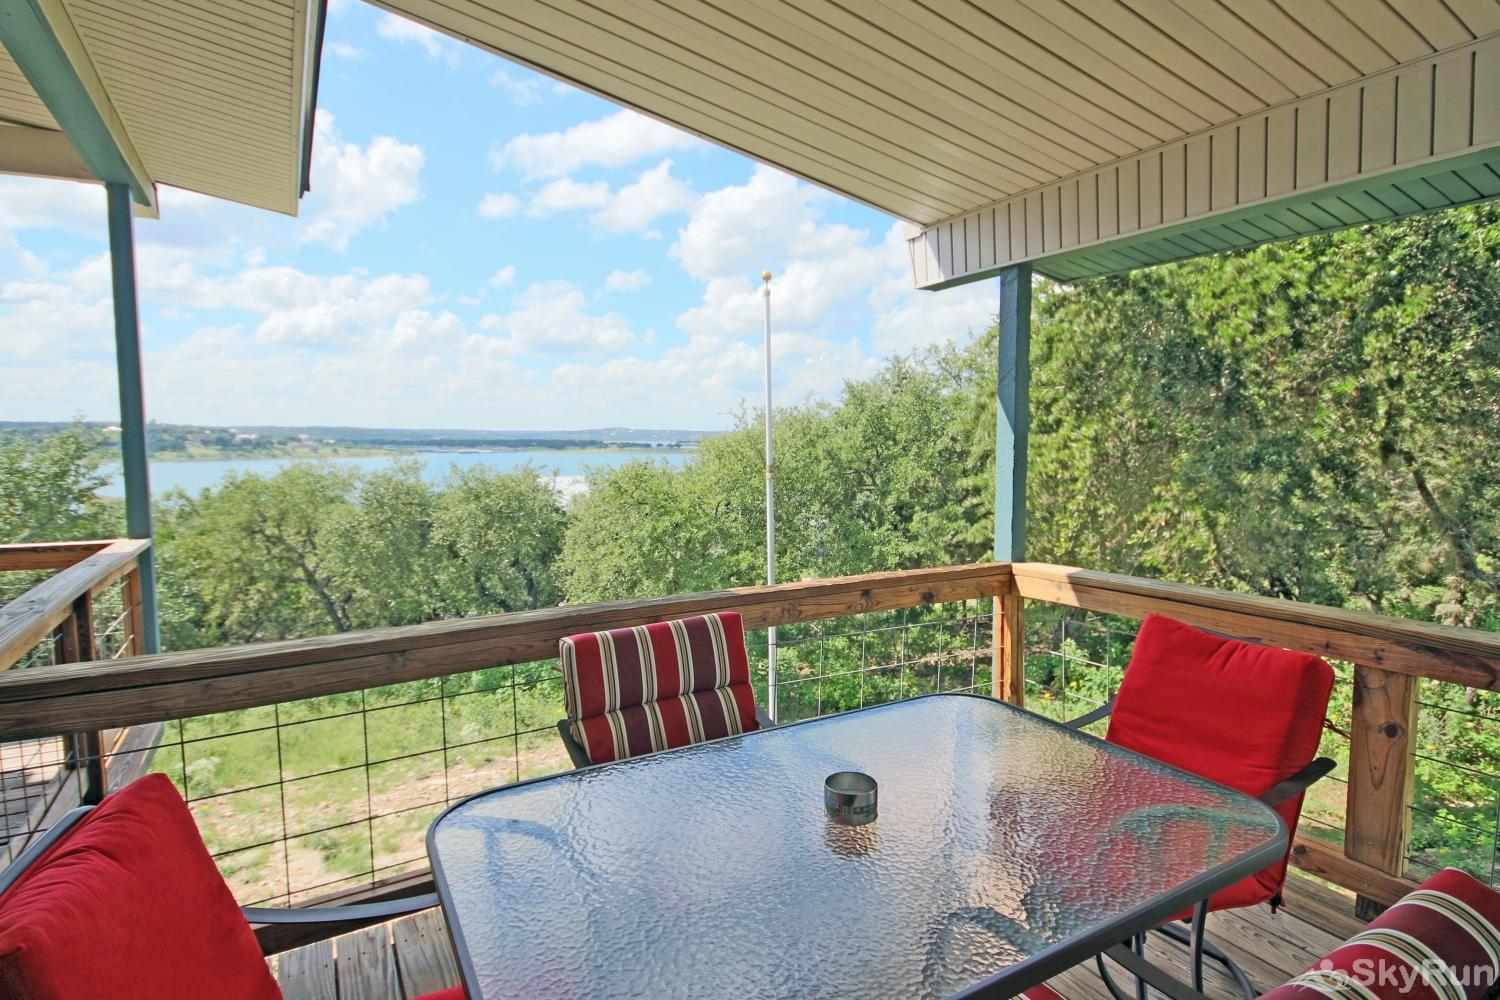 LAKEPOINT LOOKOUT Covered Deck with Lake View